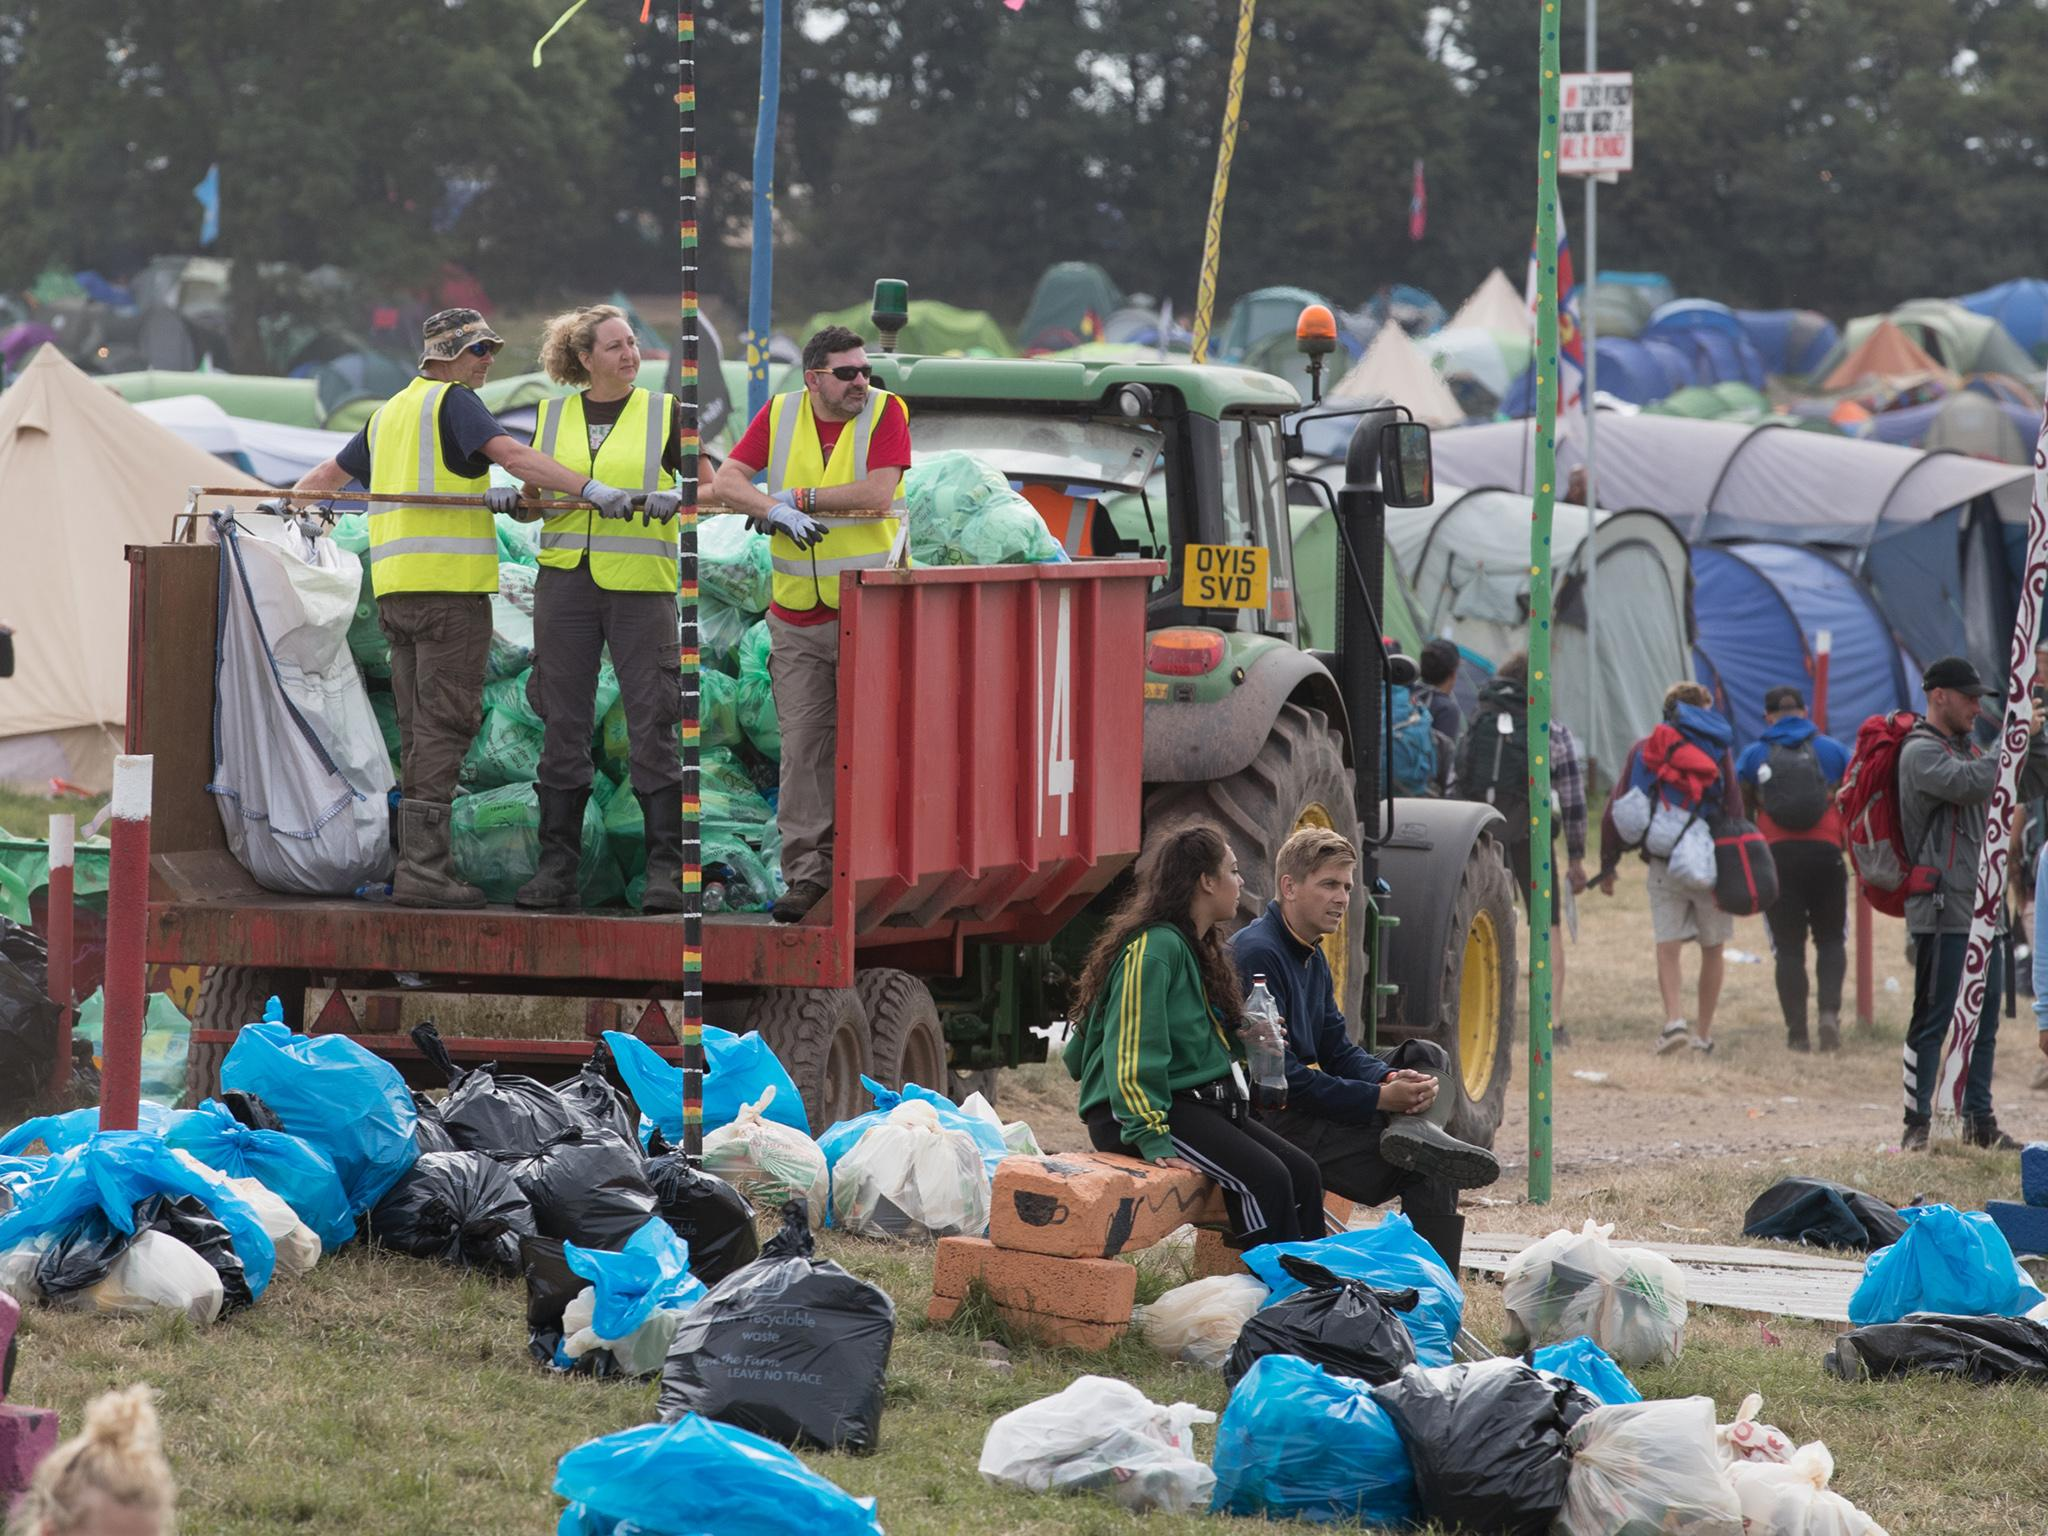 Glastonbury exploits hundreds of EU workers on zero hour contracts by firing them after two days